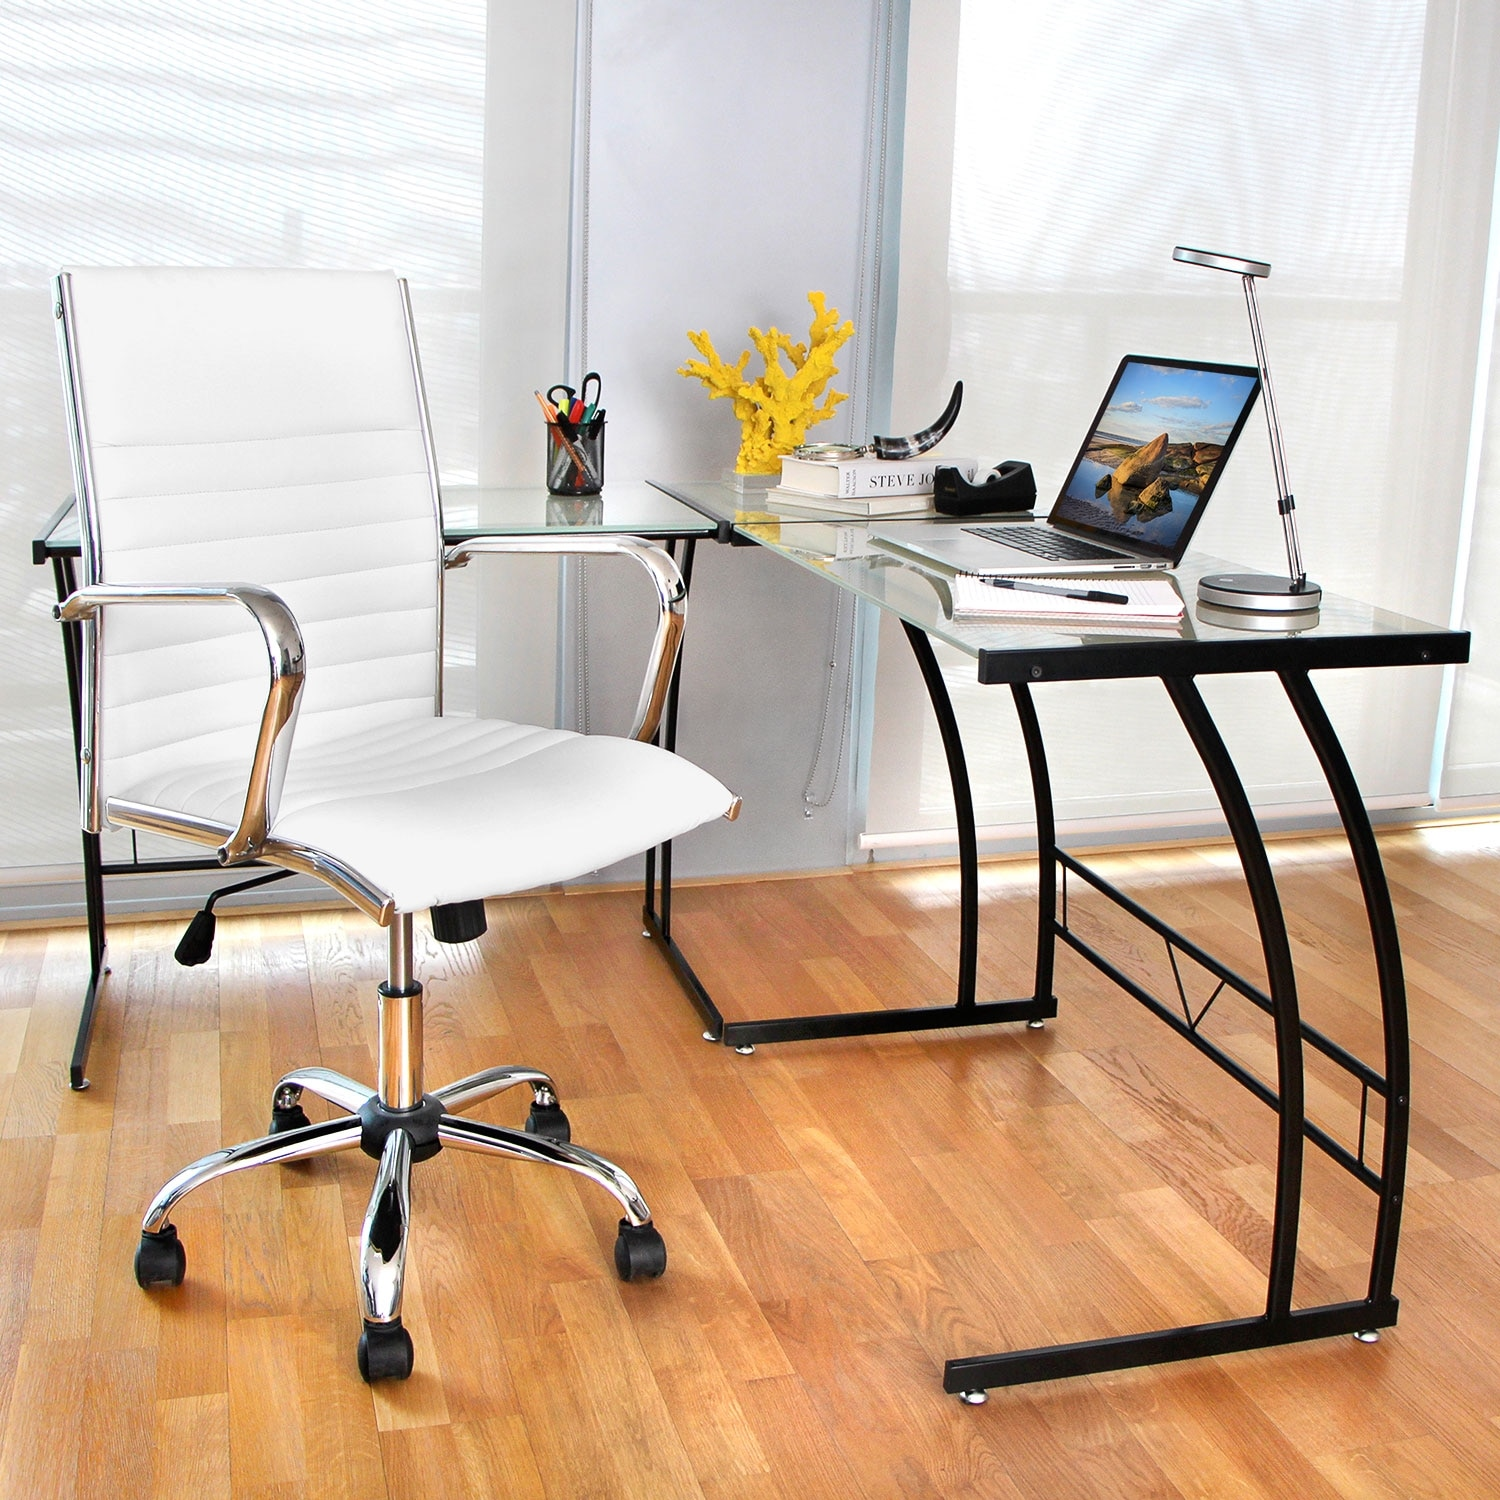 Director office arm chair white value city furniture - Value city office desk ...